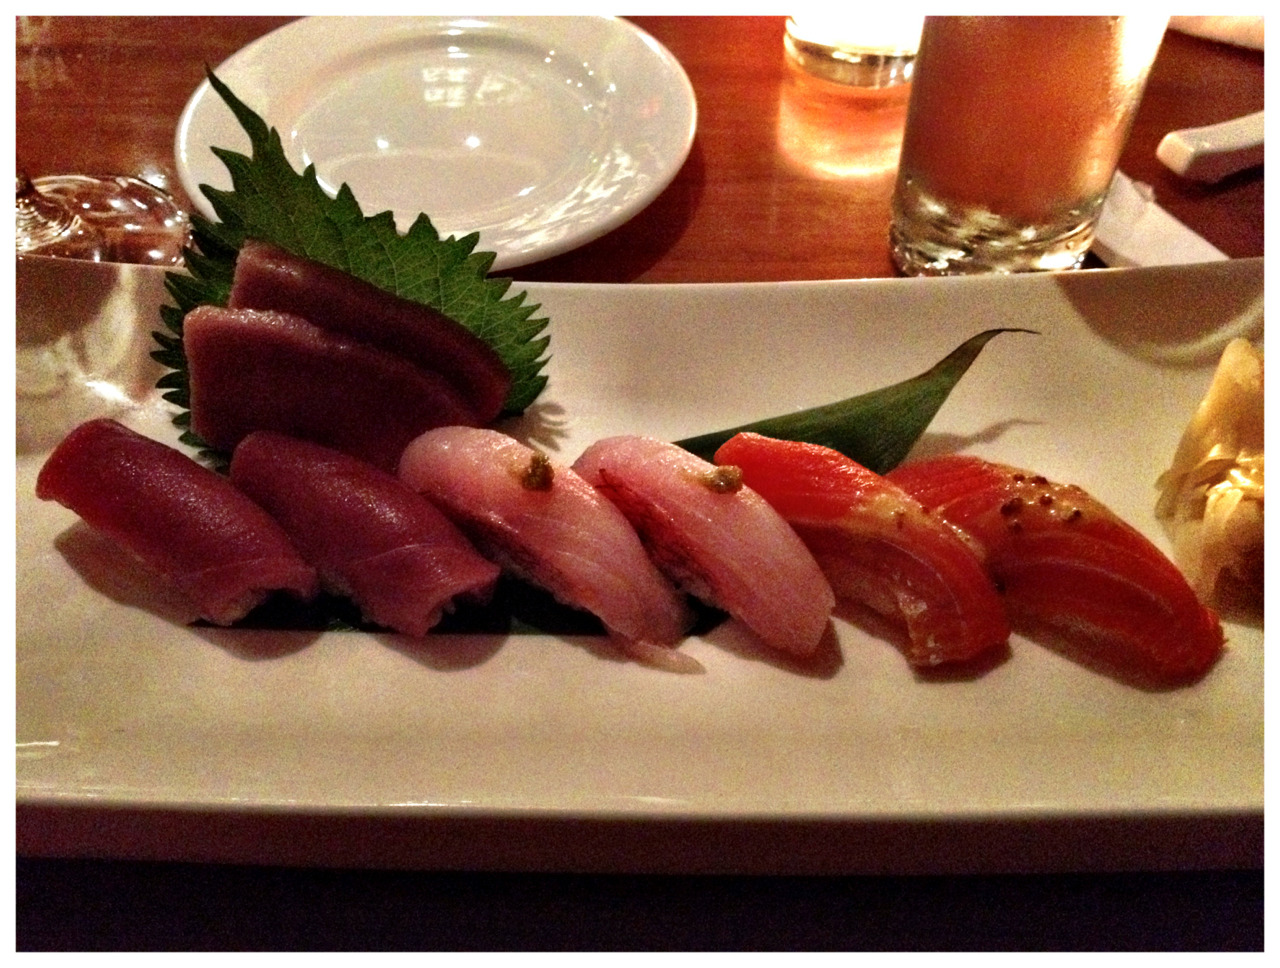 Toro, bluefin, sockeye salmon, kinme dai (wild golden eye snapper), dinner tonight.